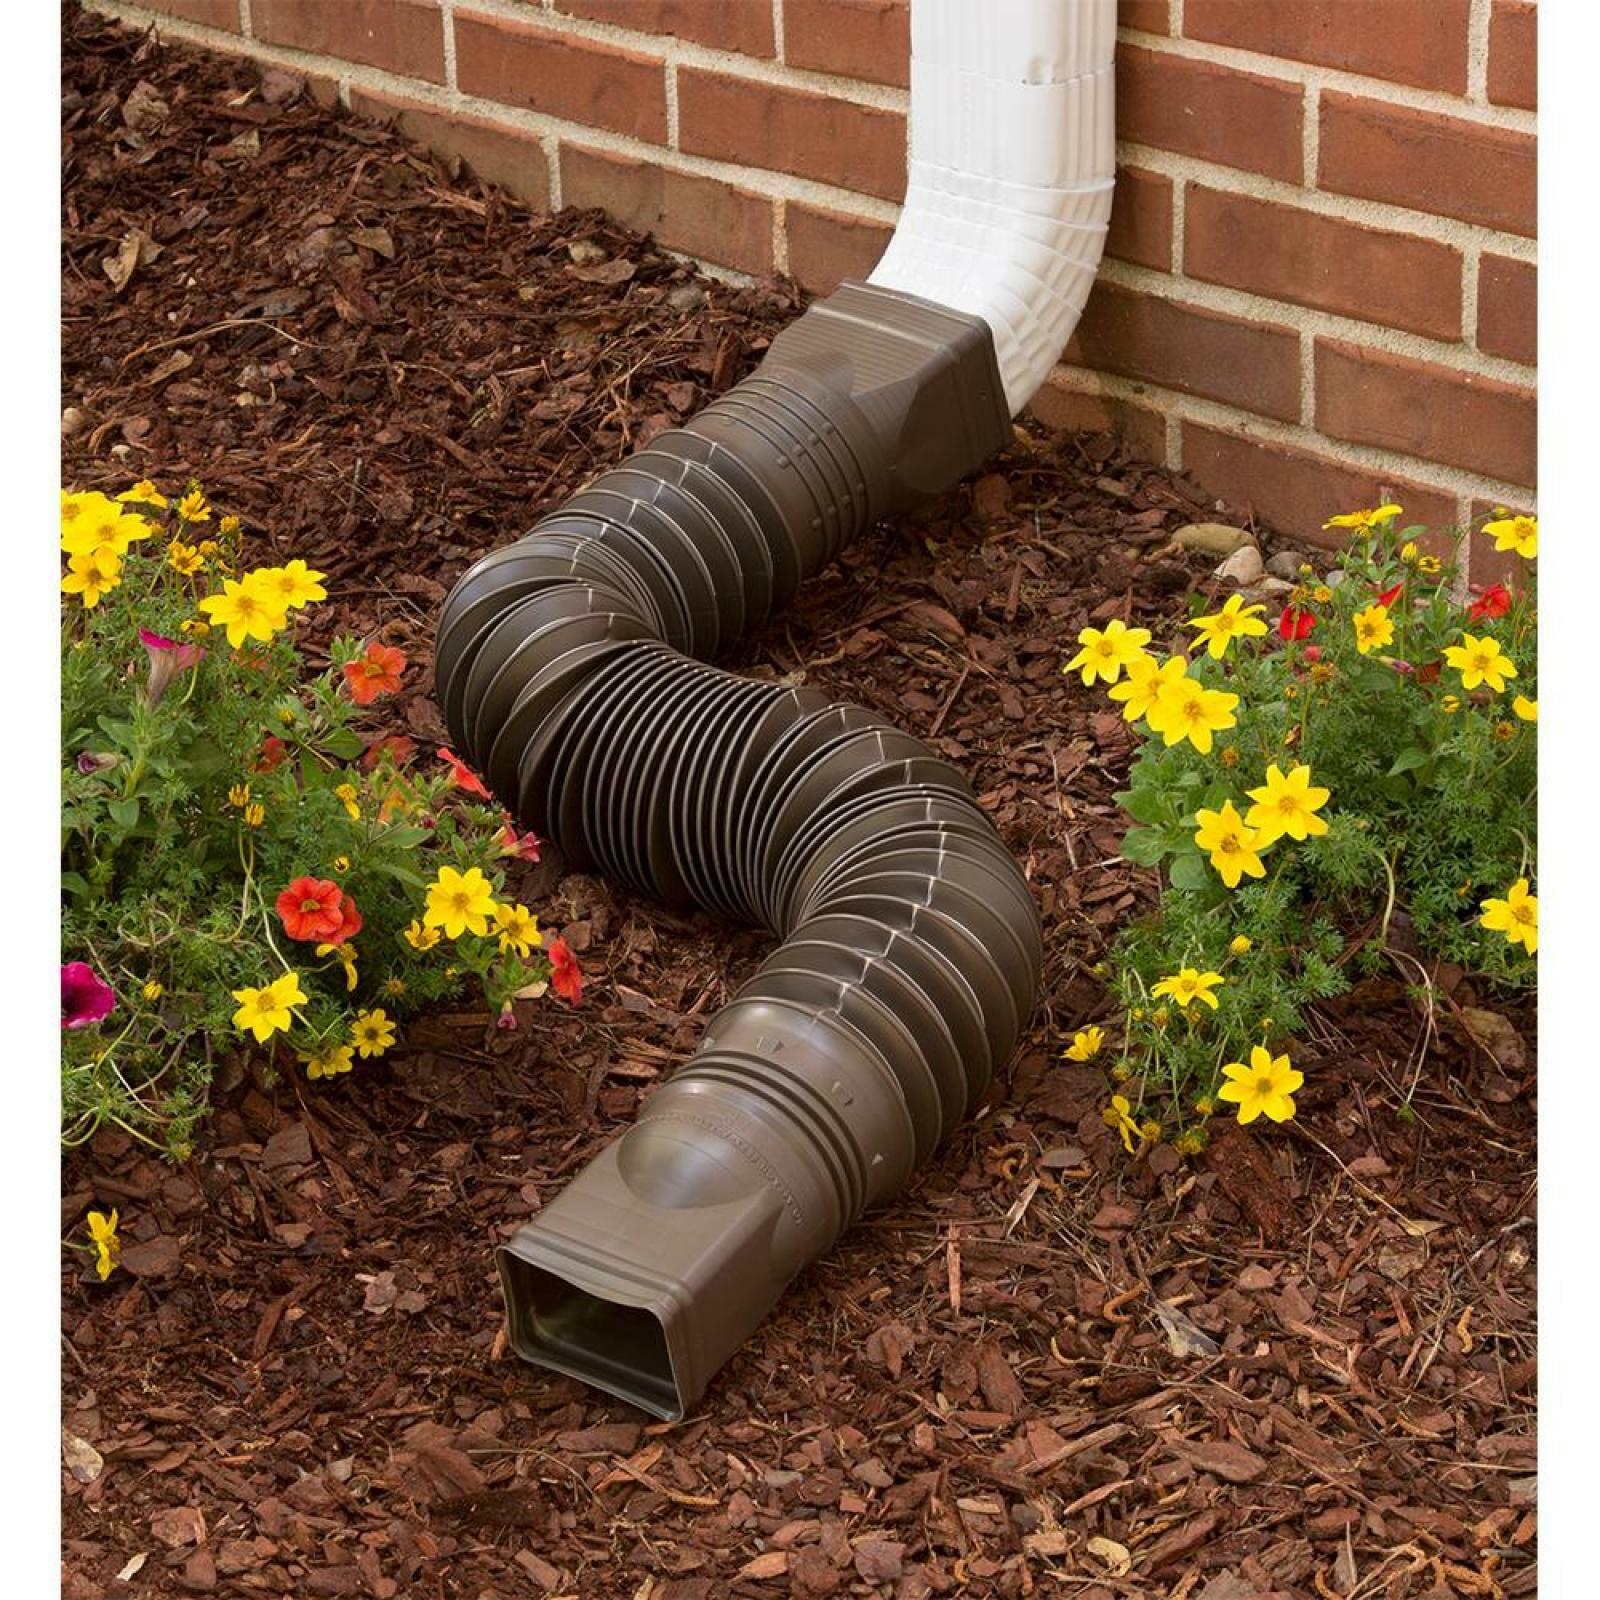 Connect Pvc Pipe To Catch Basin